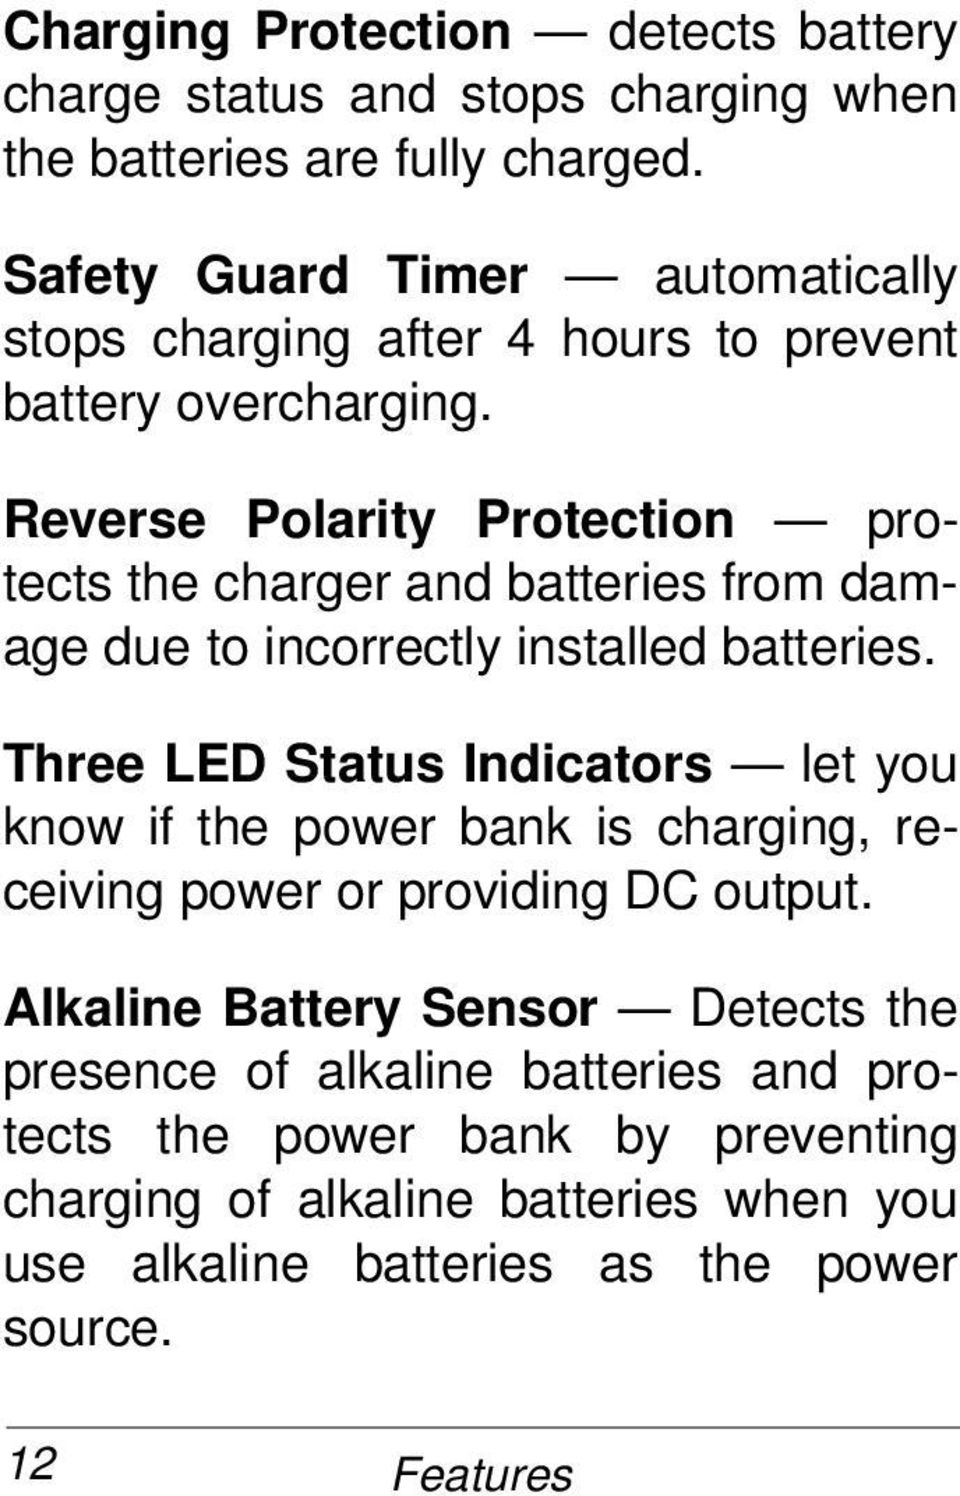 Reverse Polarity Protection protects the charger and batteries from damage due to incorrectly installed batteries.